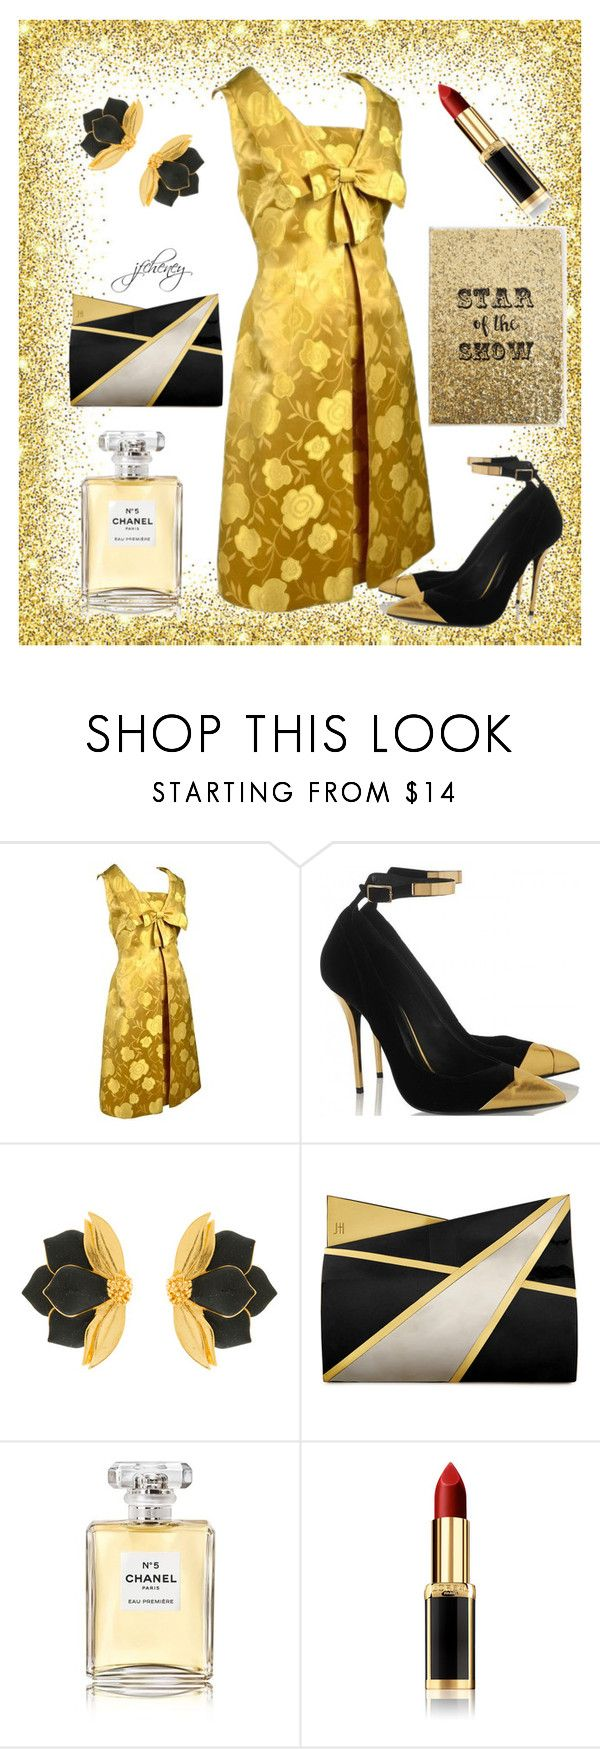 """Star of the Show"" by jfcheney ❤ liked on Polyvore featuring Oscar de la Renta, Jill Haber, Chanel, L'Oréal Paris and Ashley Stewart"